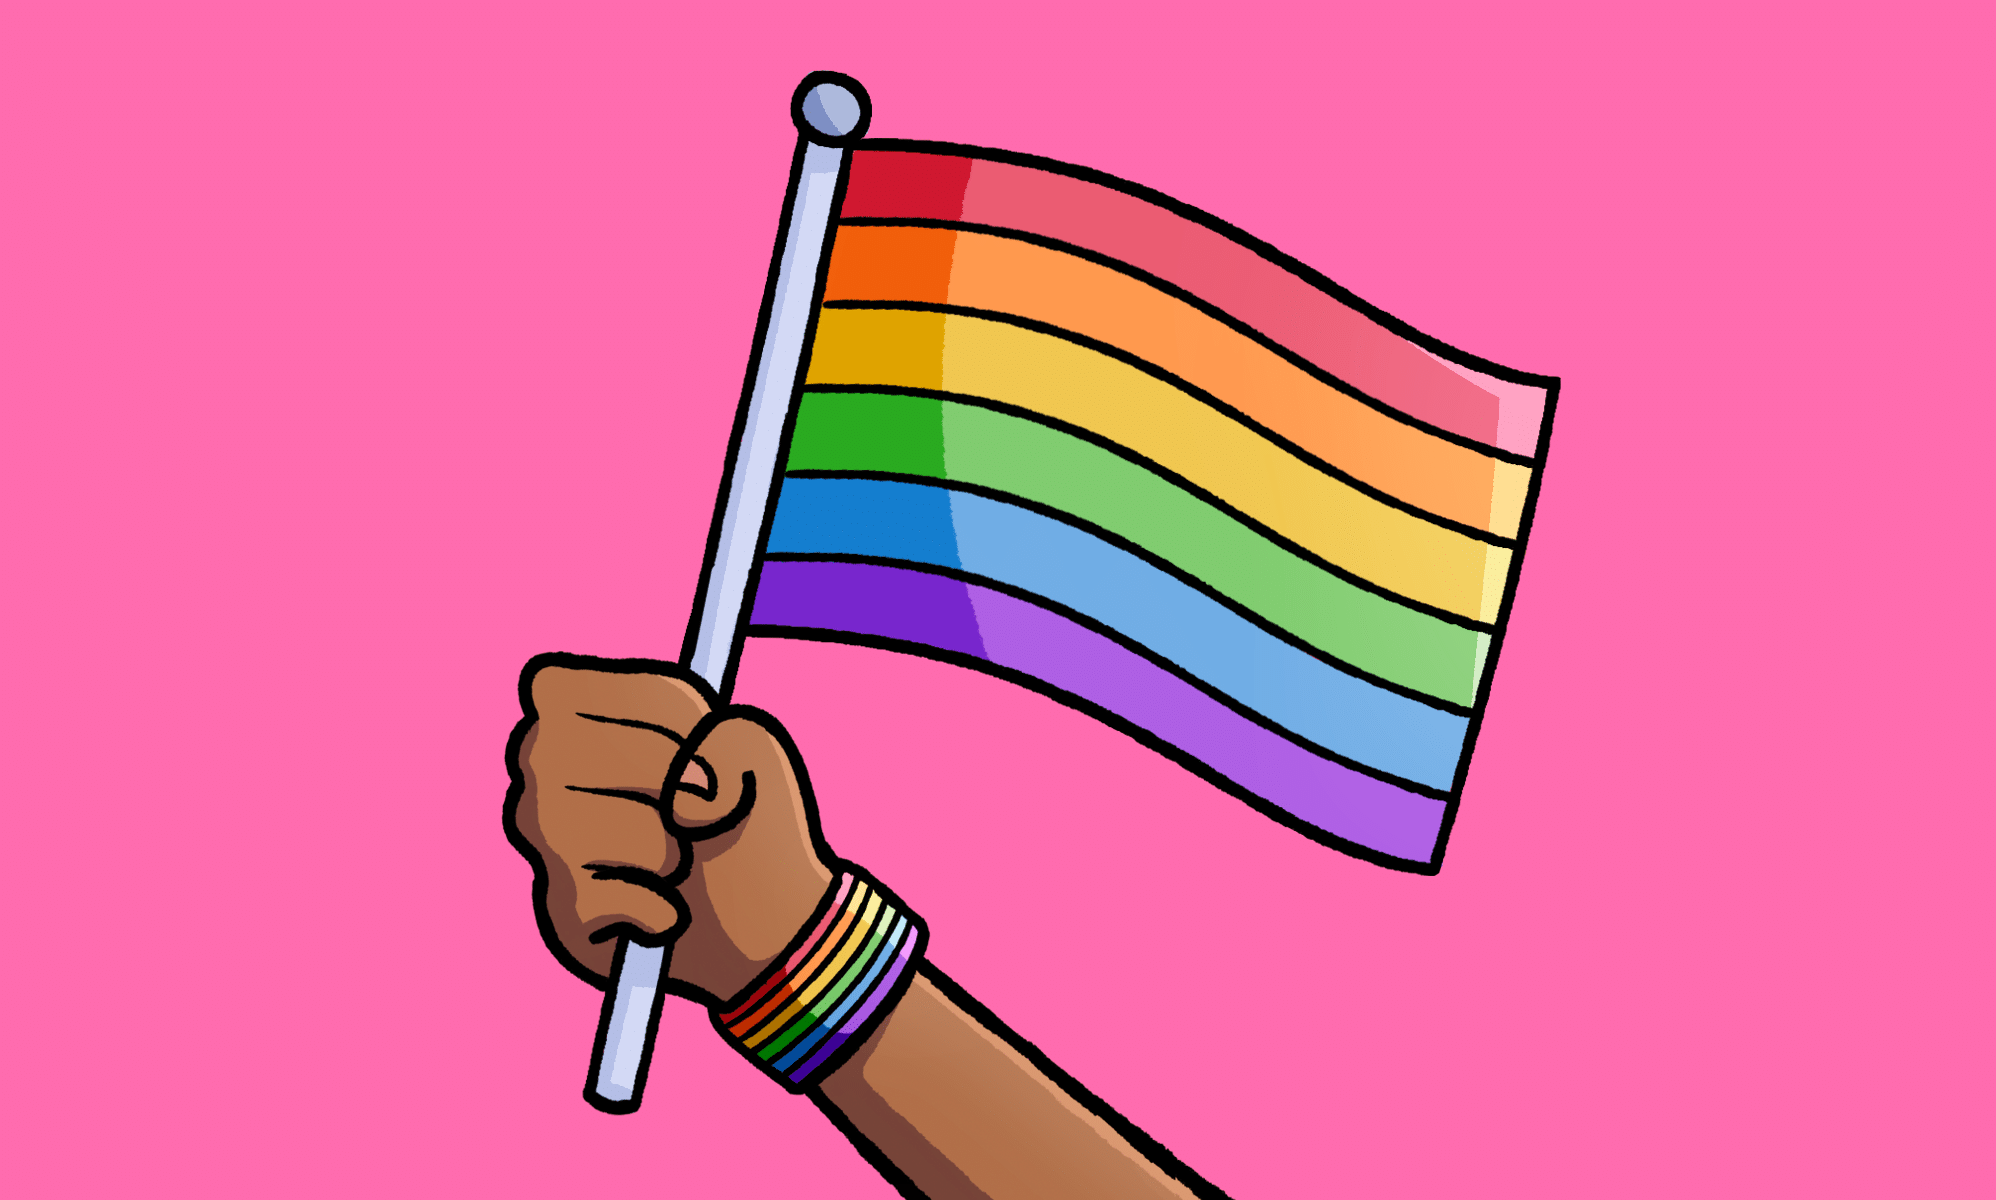 11 things you could ask a bisexual person, but probably shouldn't